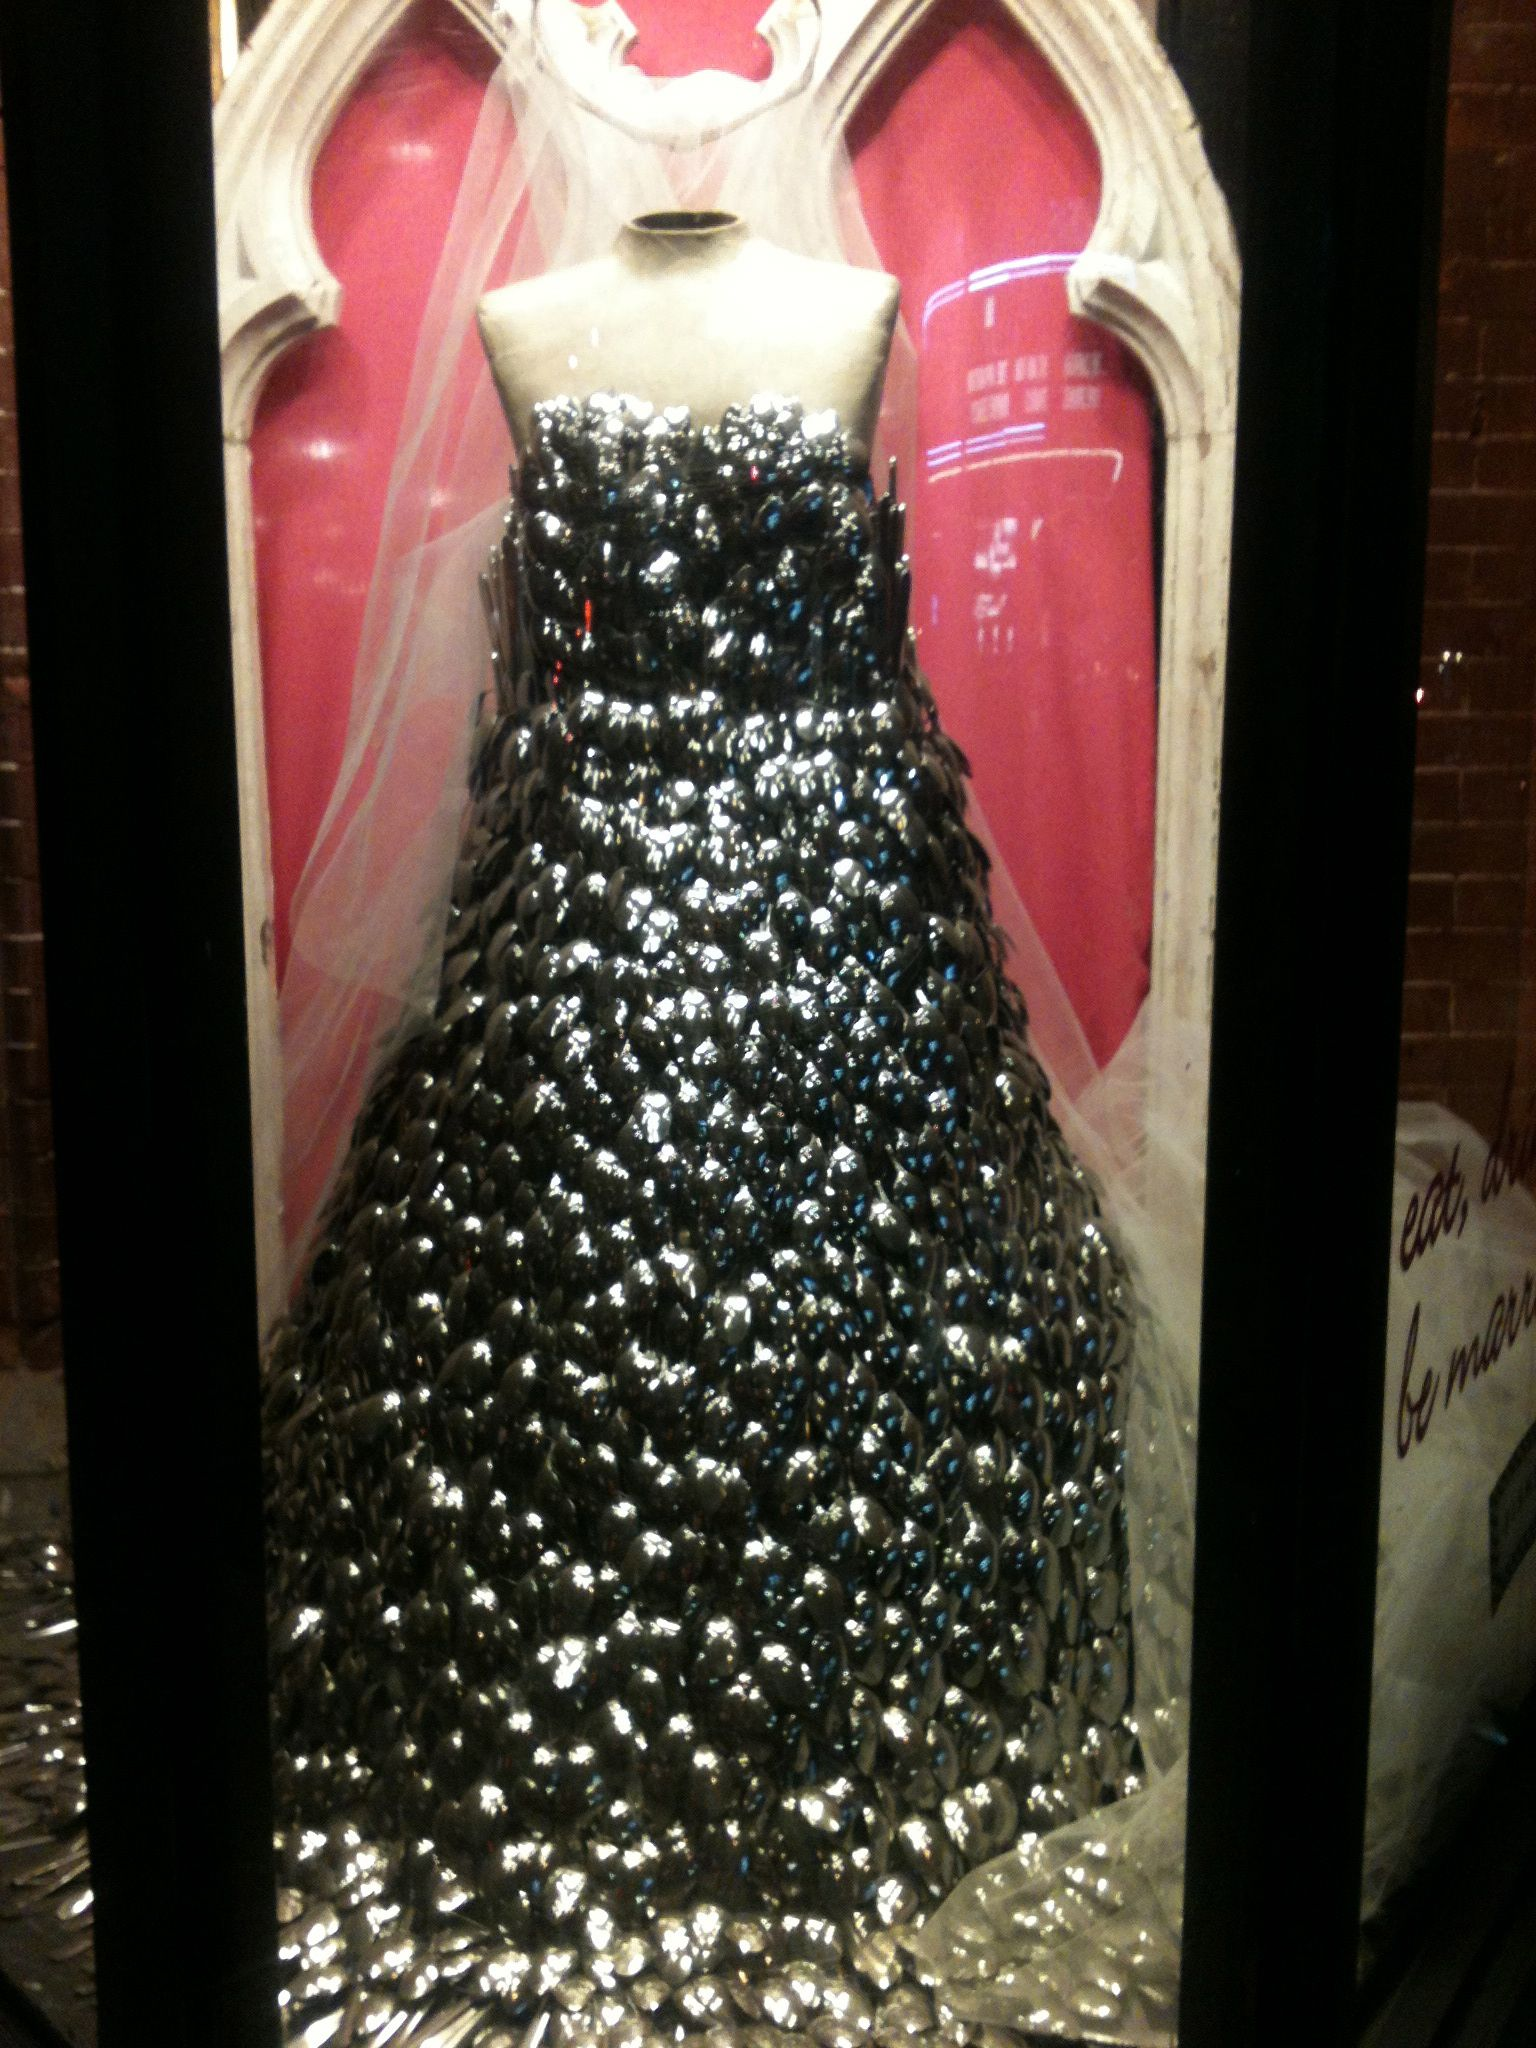 NYC Kitchen Supply Store. Dress Made Out Of Spoons 2012.